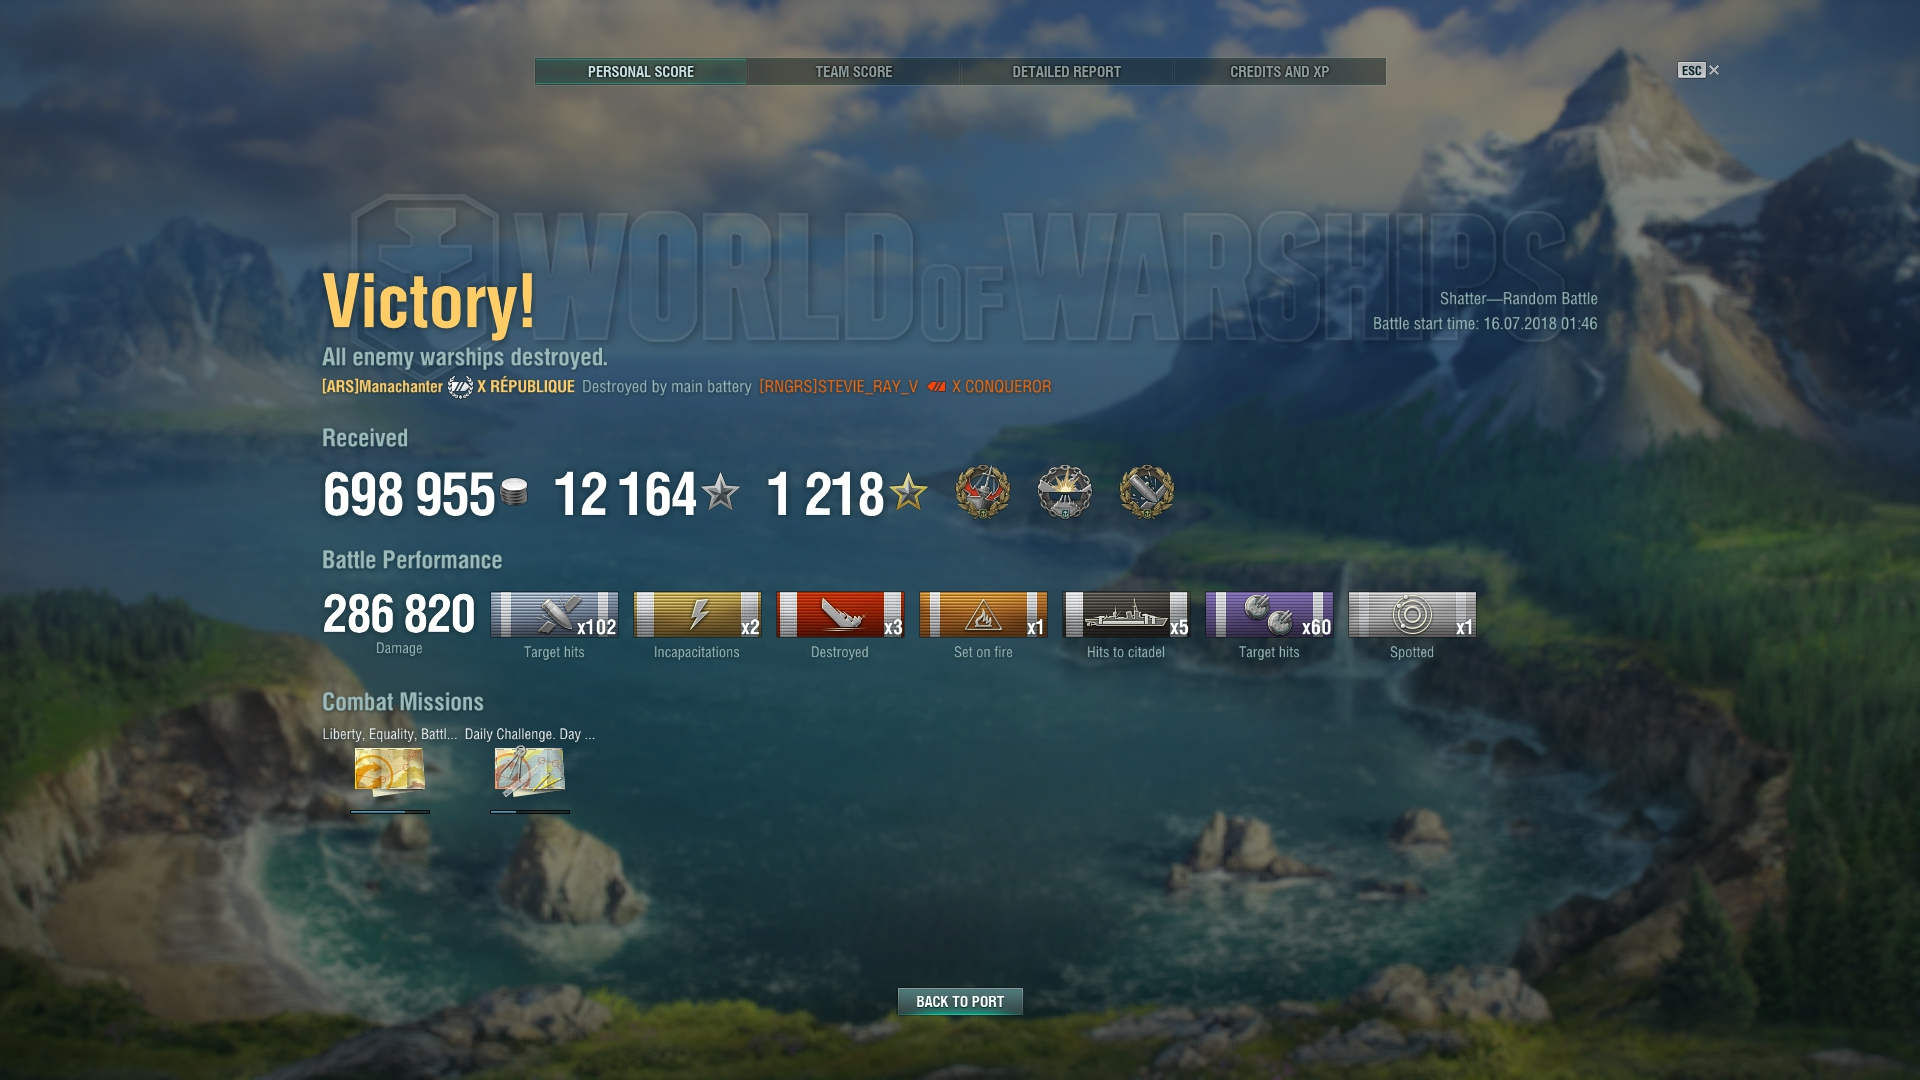 world of warships thread - nda lifted  time to play